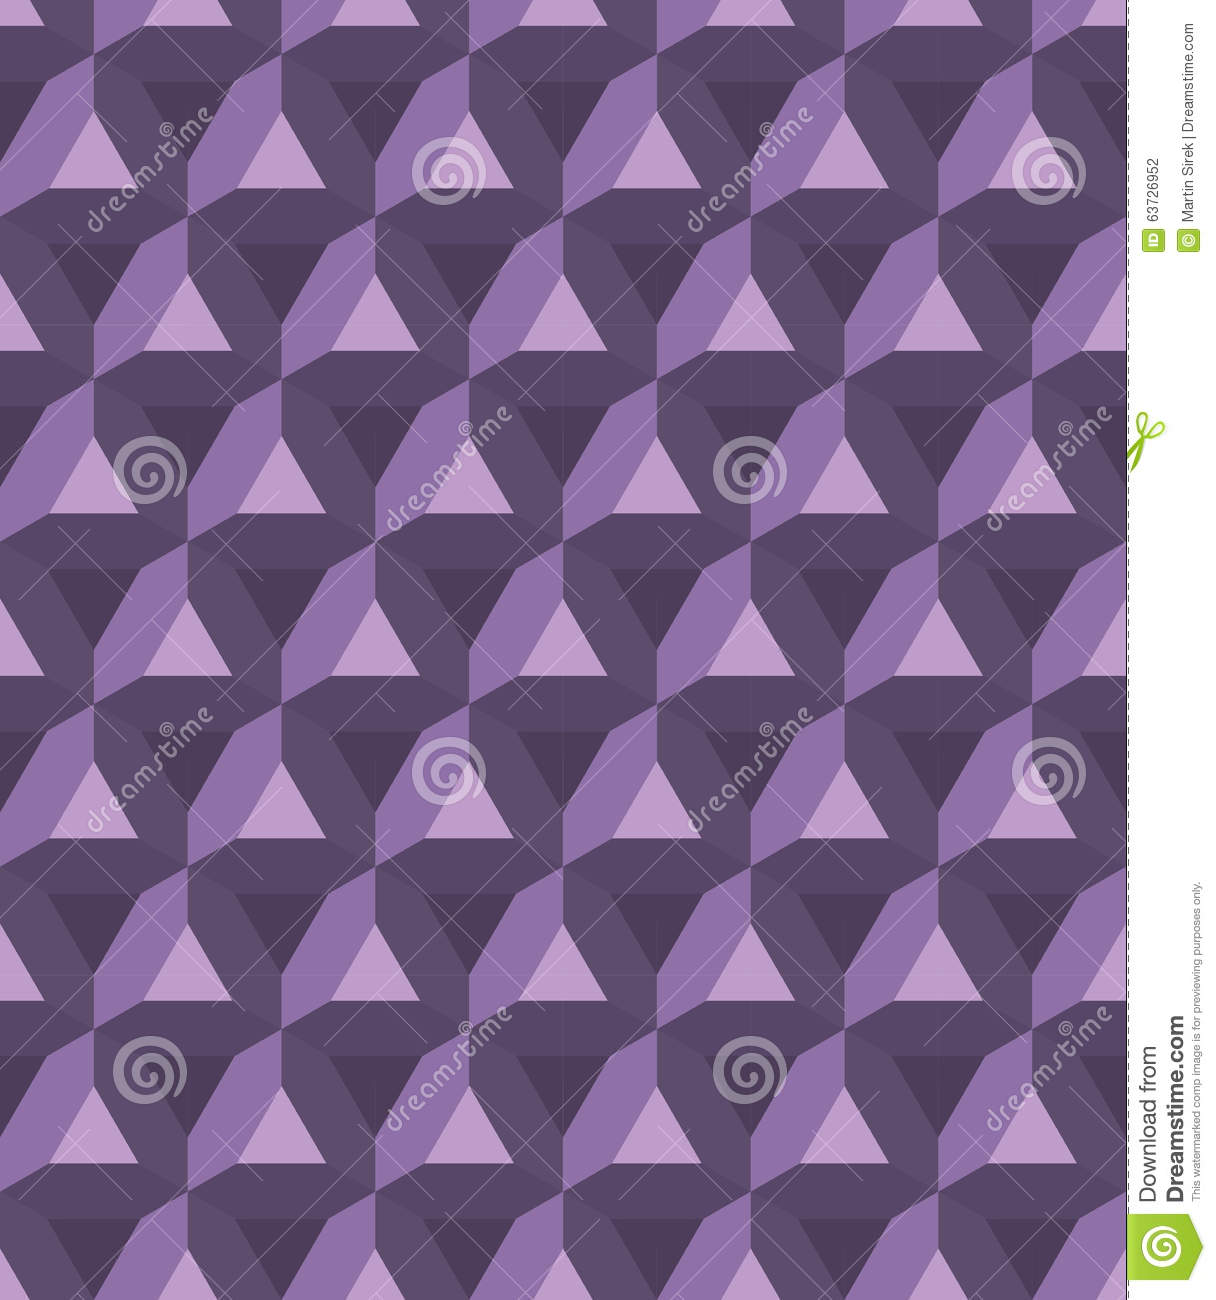 Vector Modern Seamless Colorful Geometry Prism Pattern